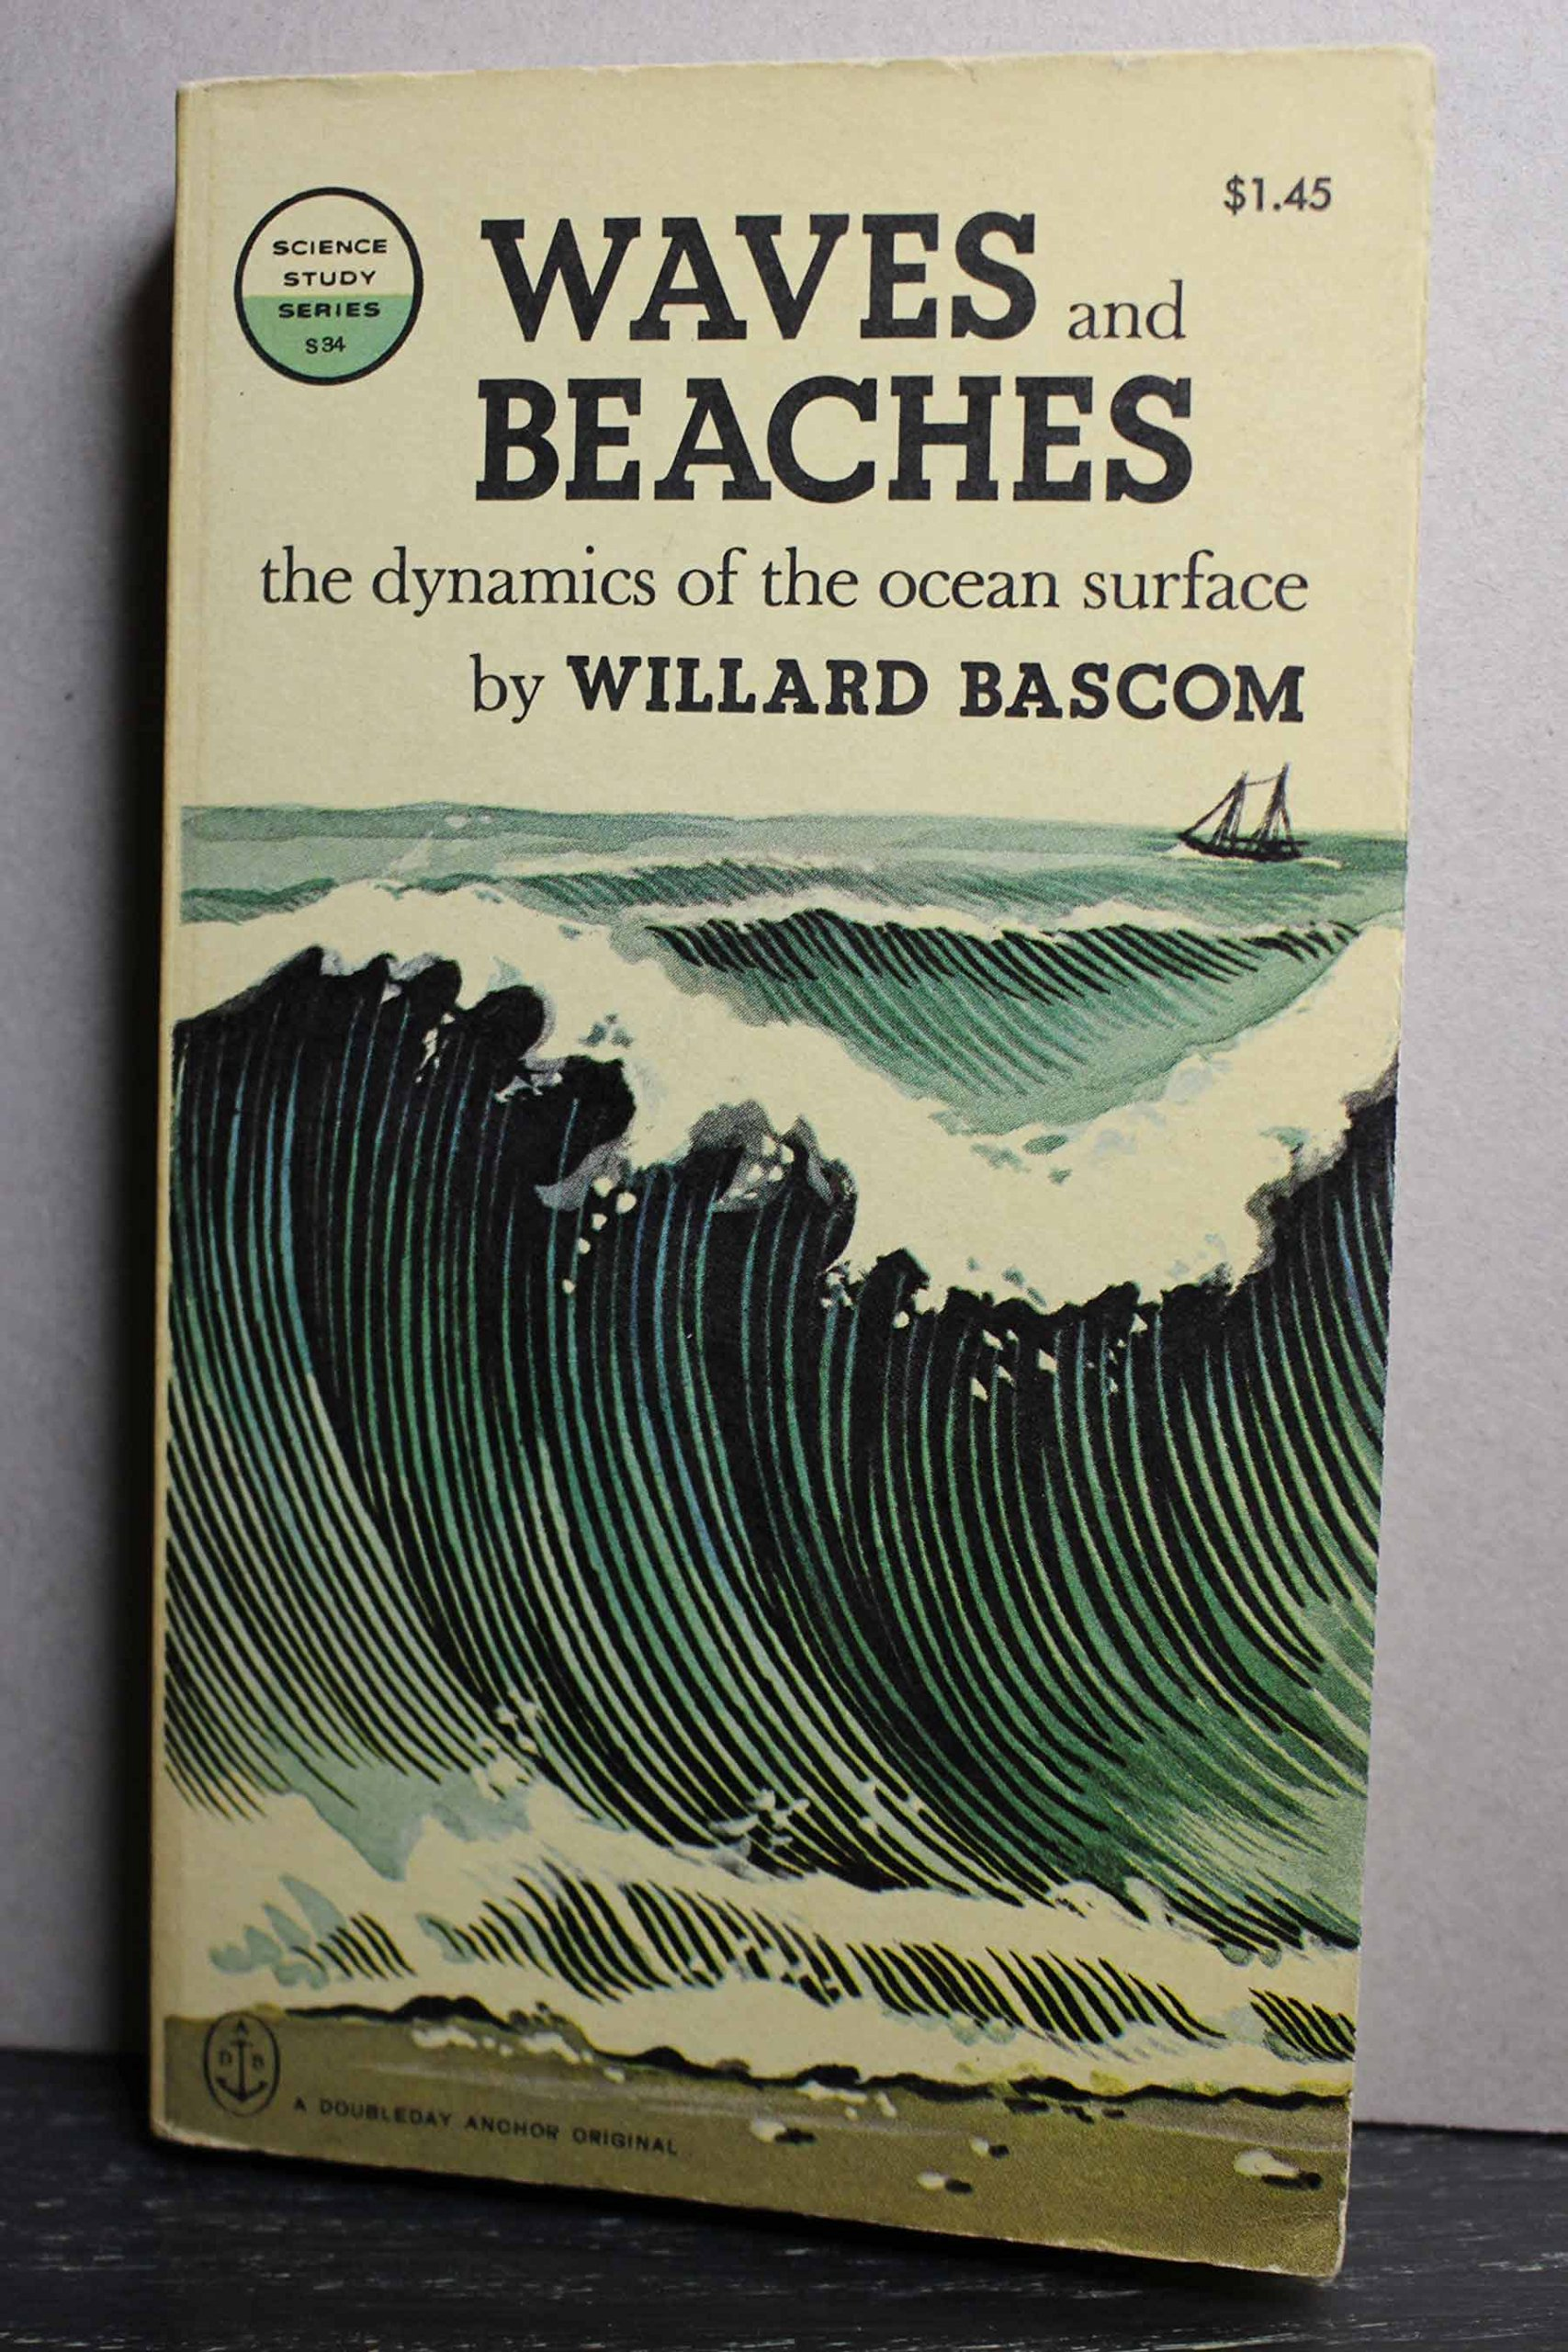 Waves and Beaches: Willard Bascom, Author: 9780385027755